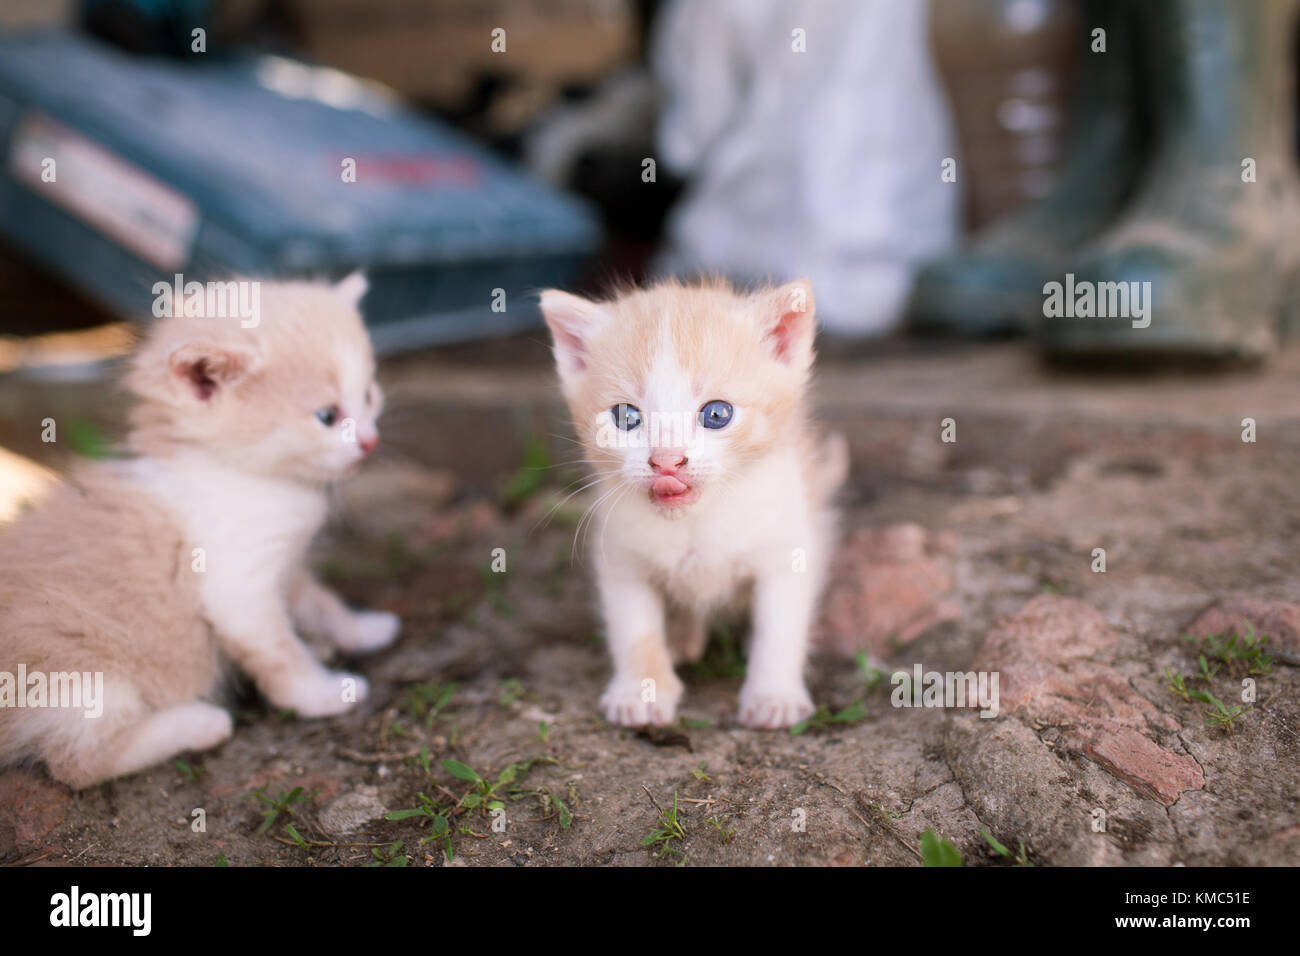 Two little funny kitten. One of them shows the pull tab - Stock Image